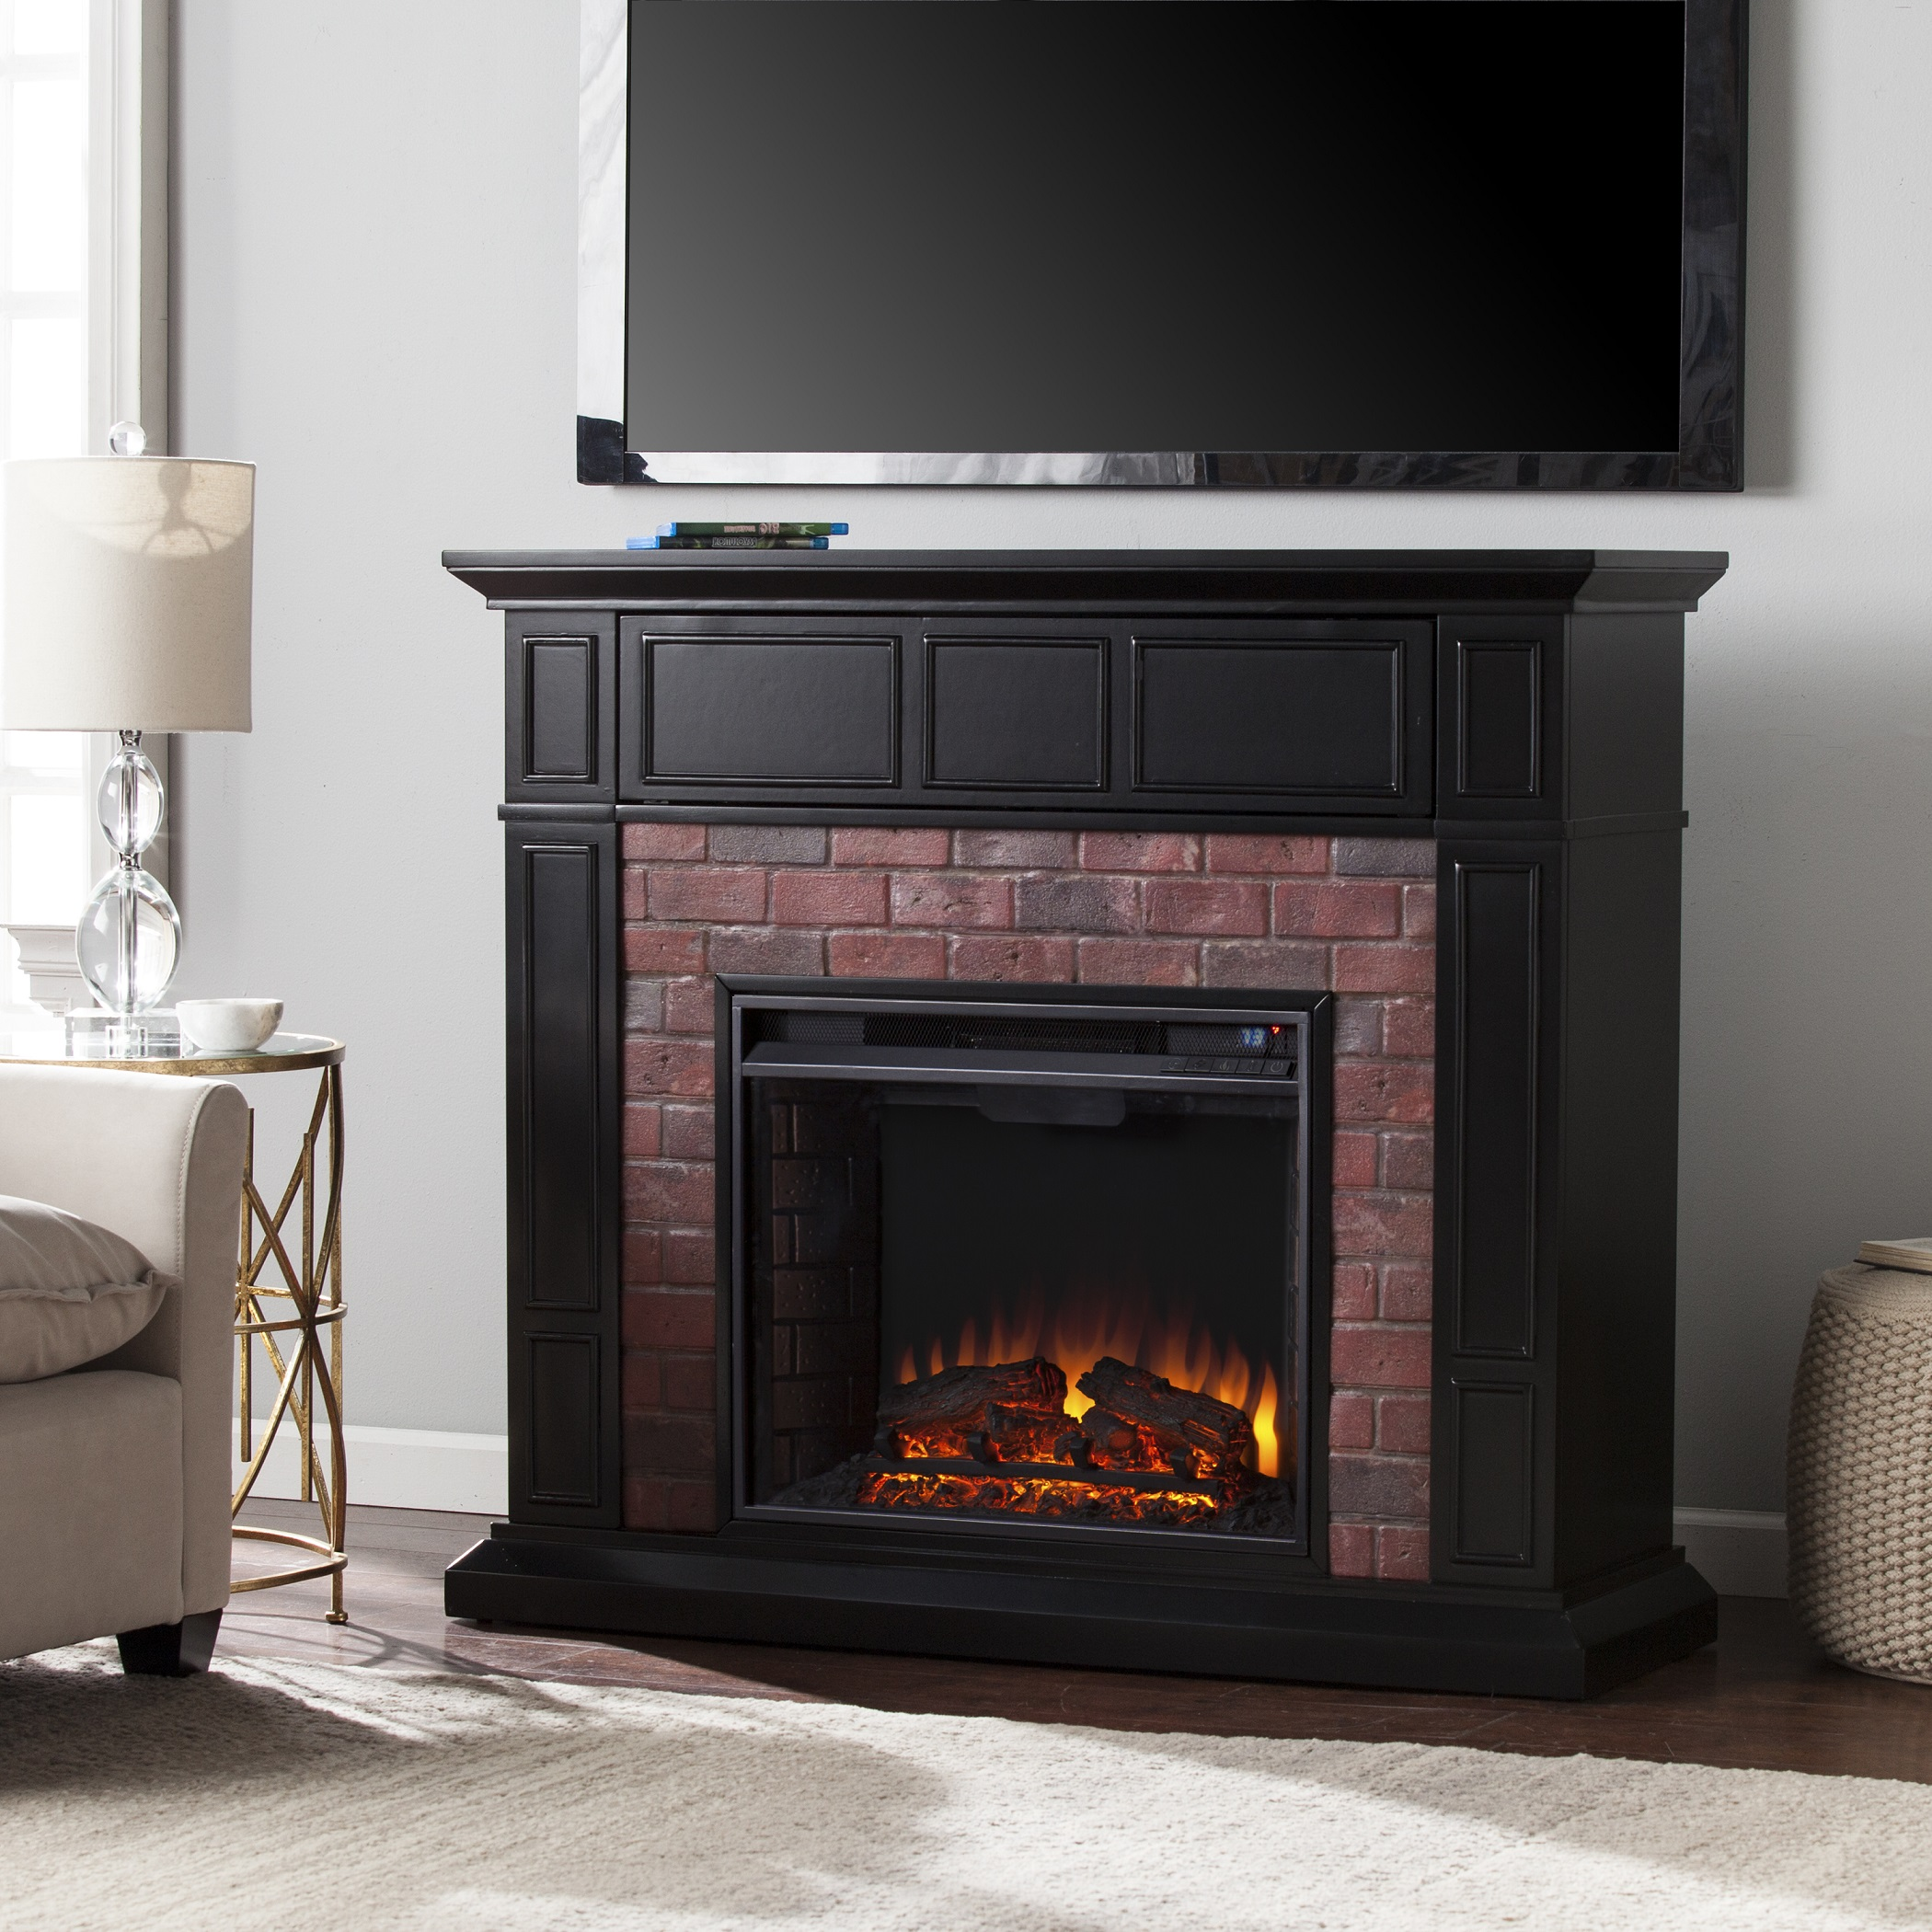 45 50 Quot Kyledale Faux Brick Electric Media Fireplace